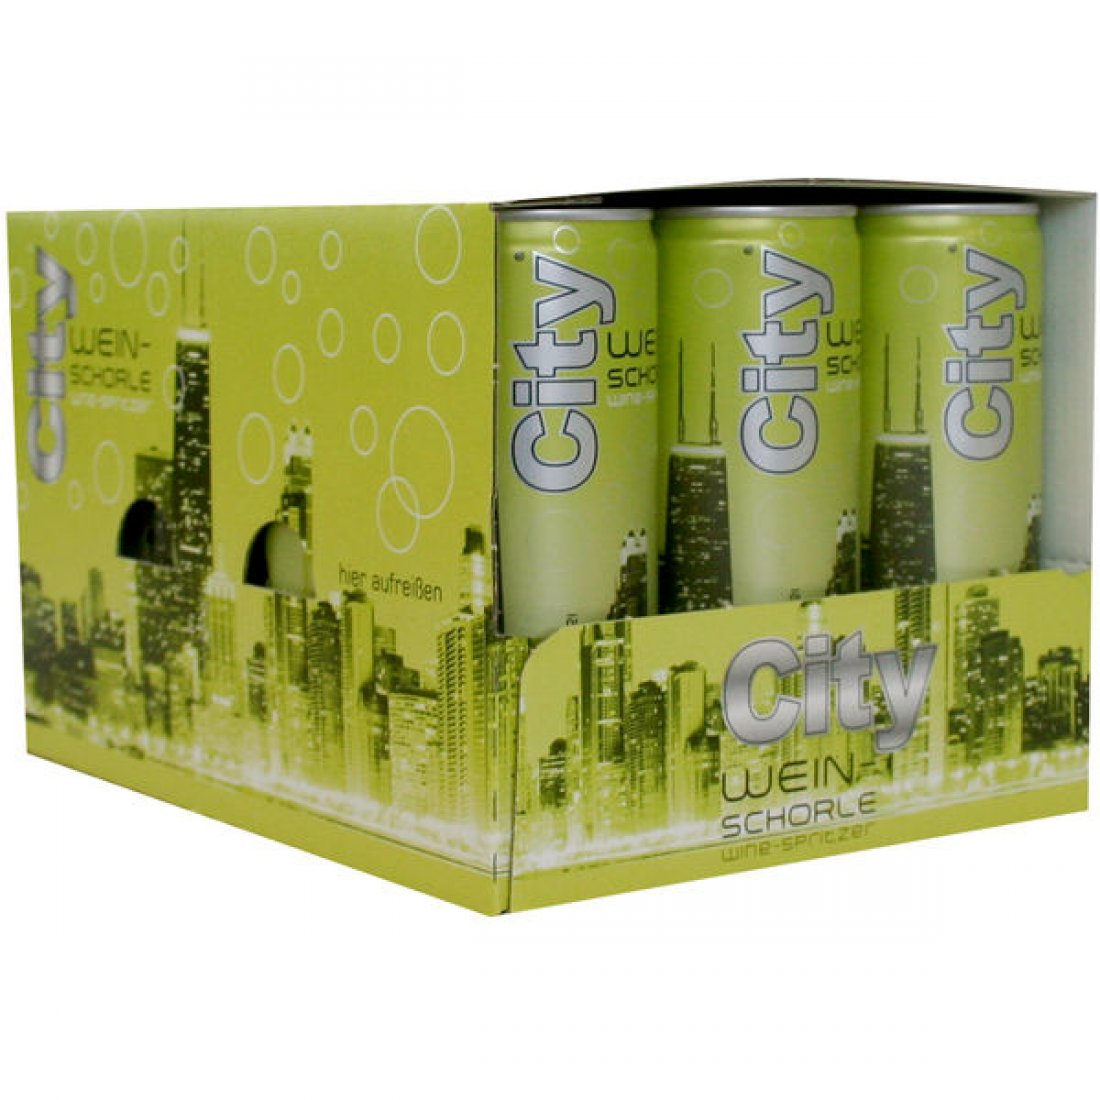 City Weinschorle Weiß 6,5% vol 12 x 250ml